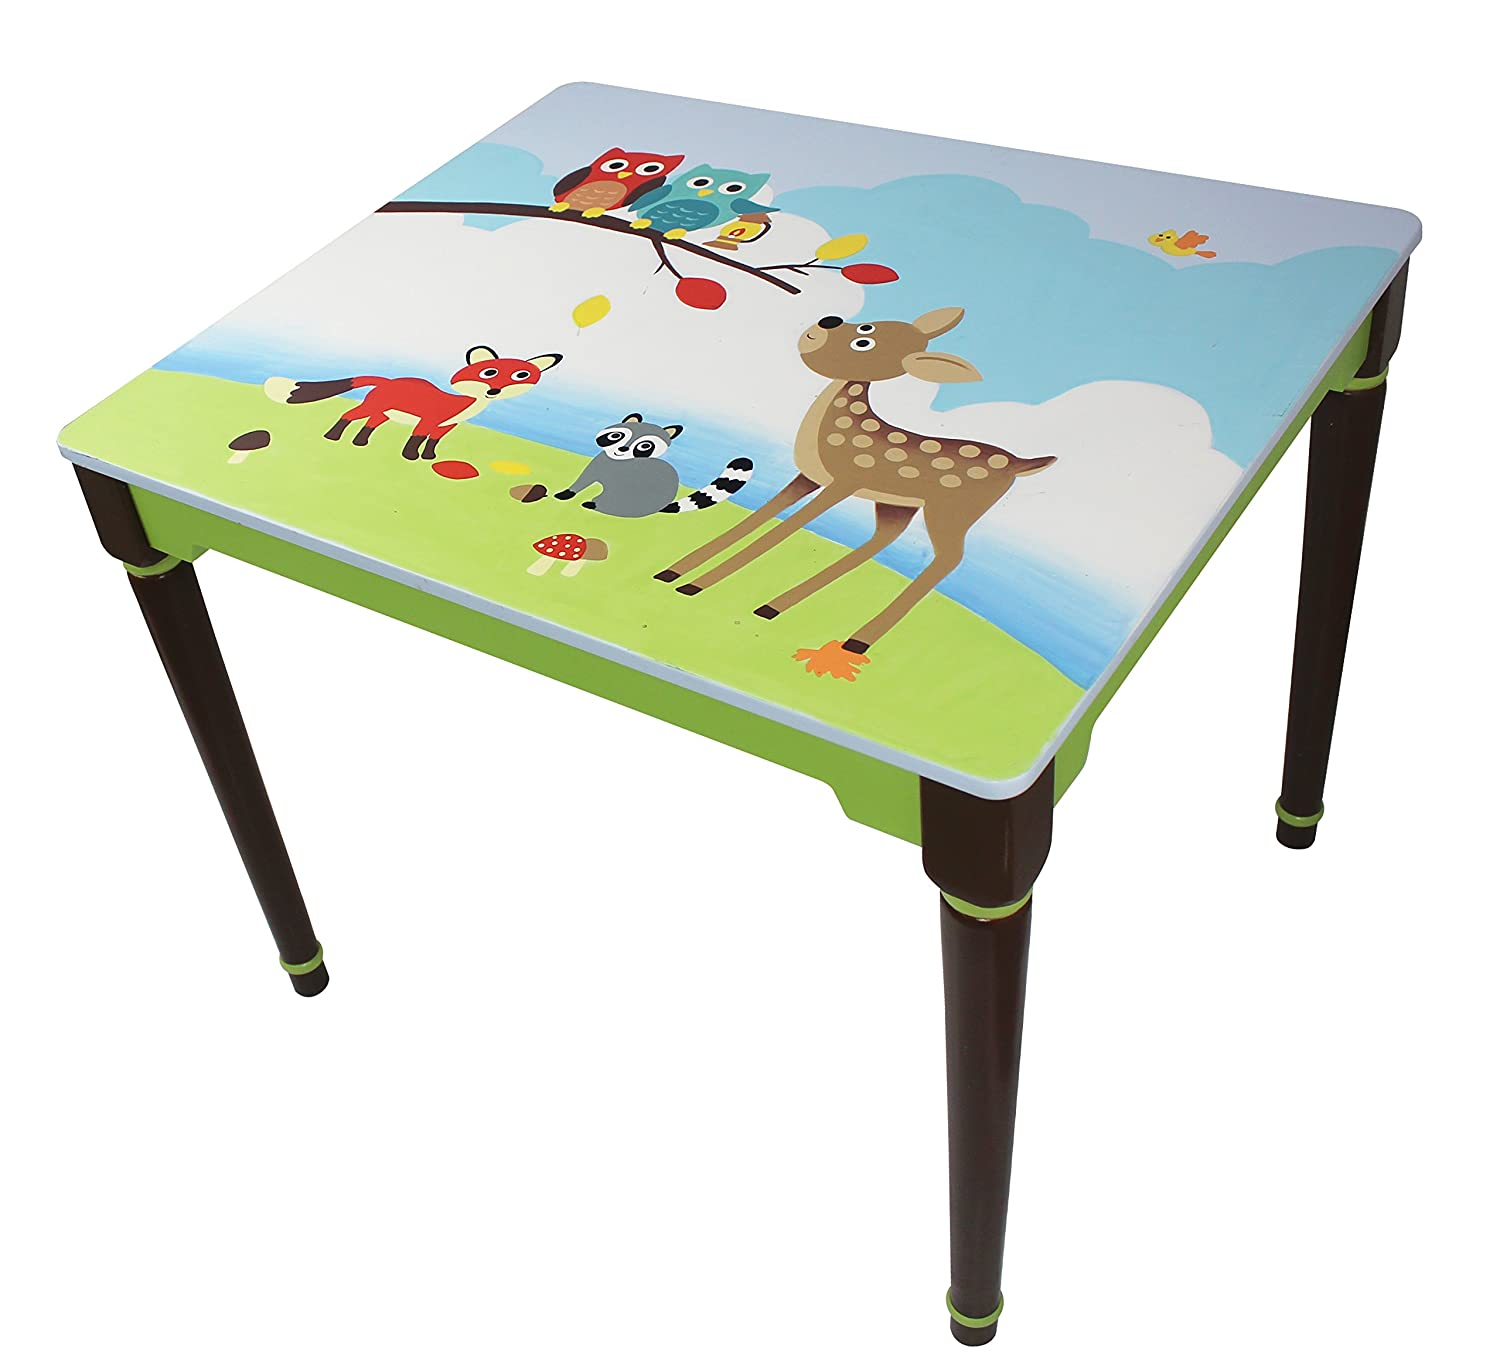 Fantasy Fields - Knights & Dragon themed Hand Crafted Kids Wooden Table (Chair Sold Seperately) |   Hand Crafted & Hand Painted Details | Child Friendly Water-based Paint Teamson TD-11837A1